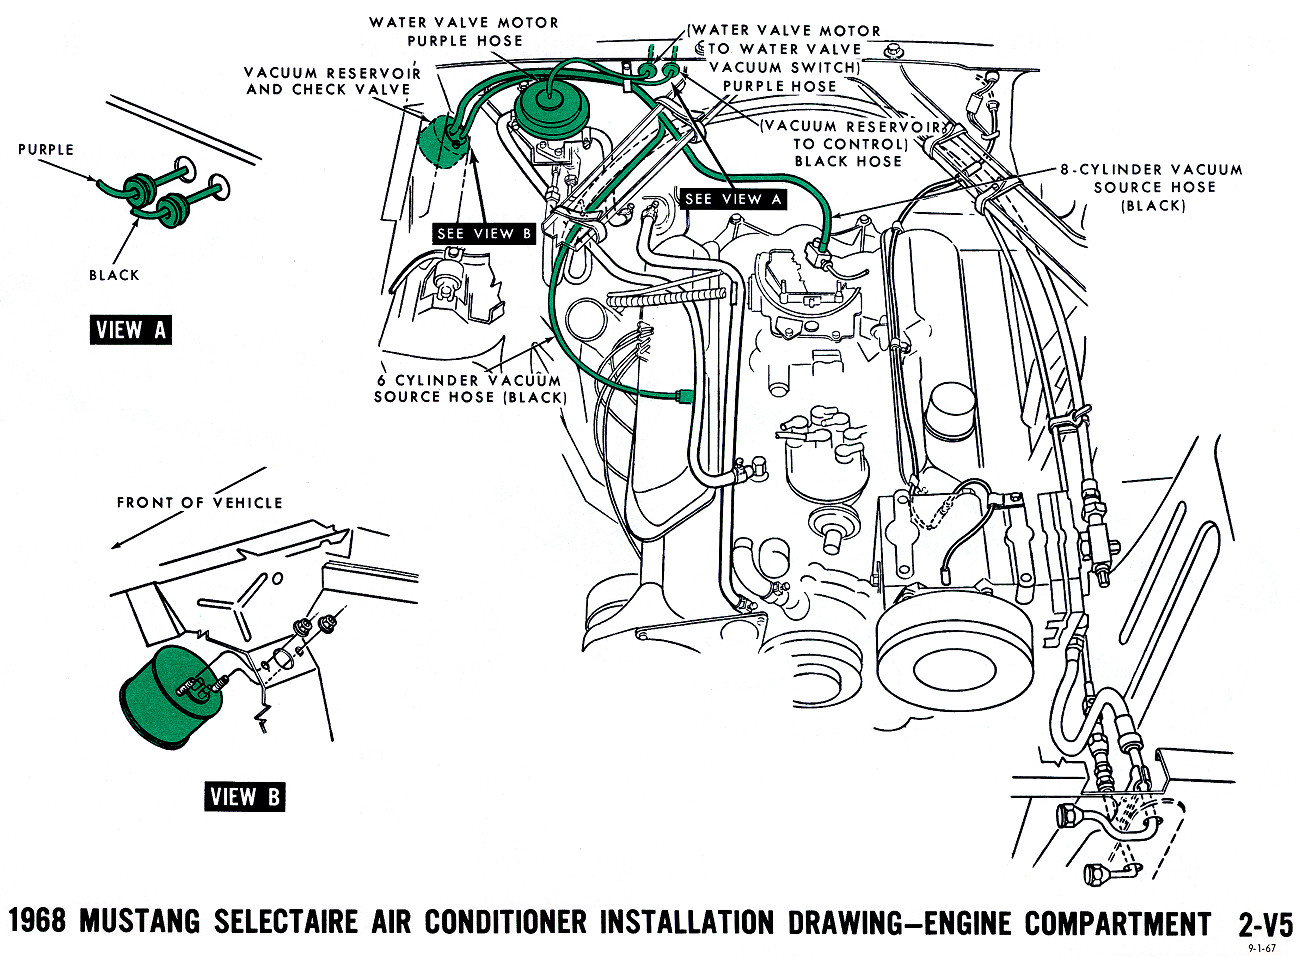 medium resolution of 68 mustang vacuum diagram wiring diagram technic ford mustang vacuum line diagram in addition 1966 ford mustang